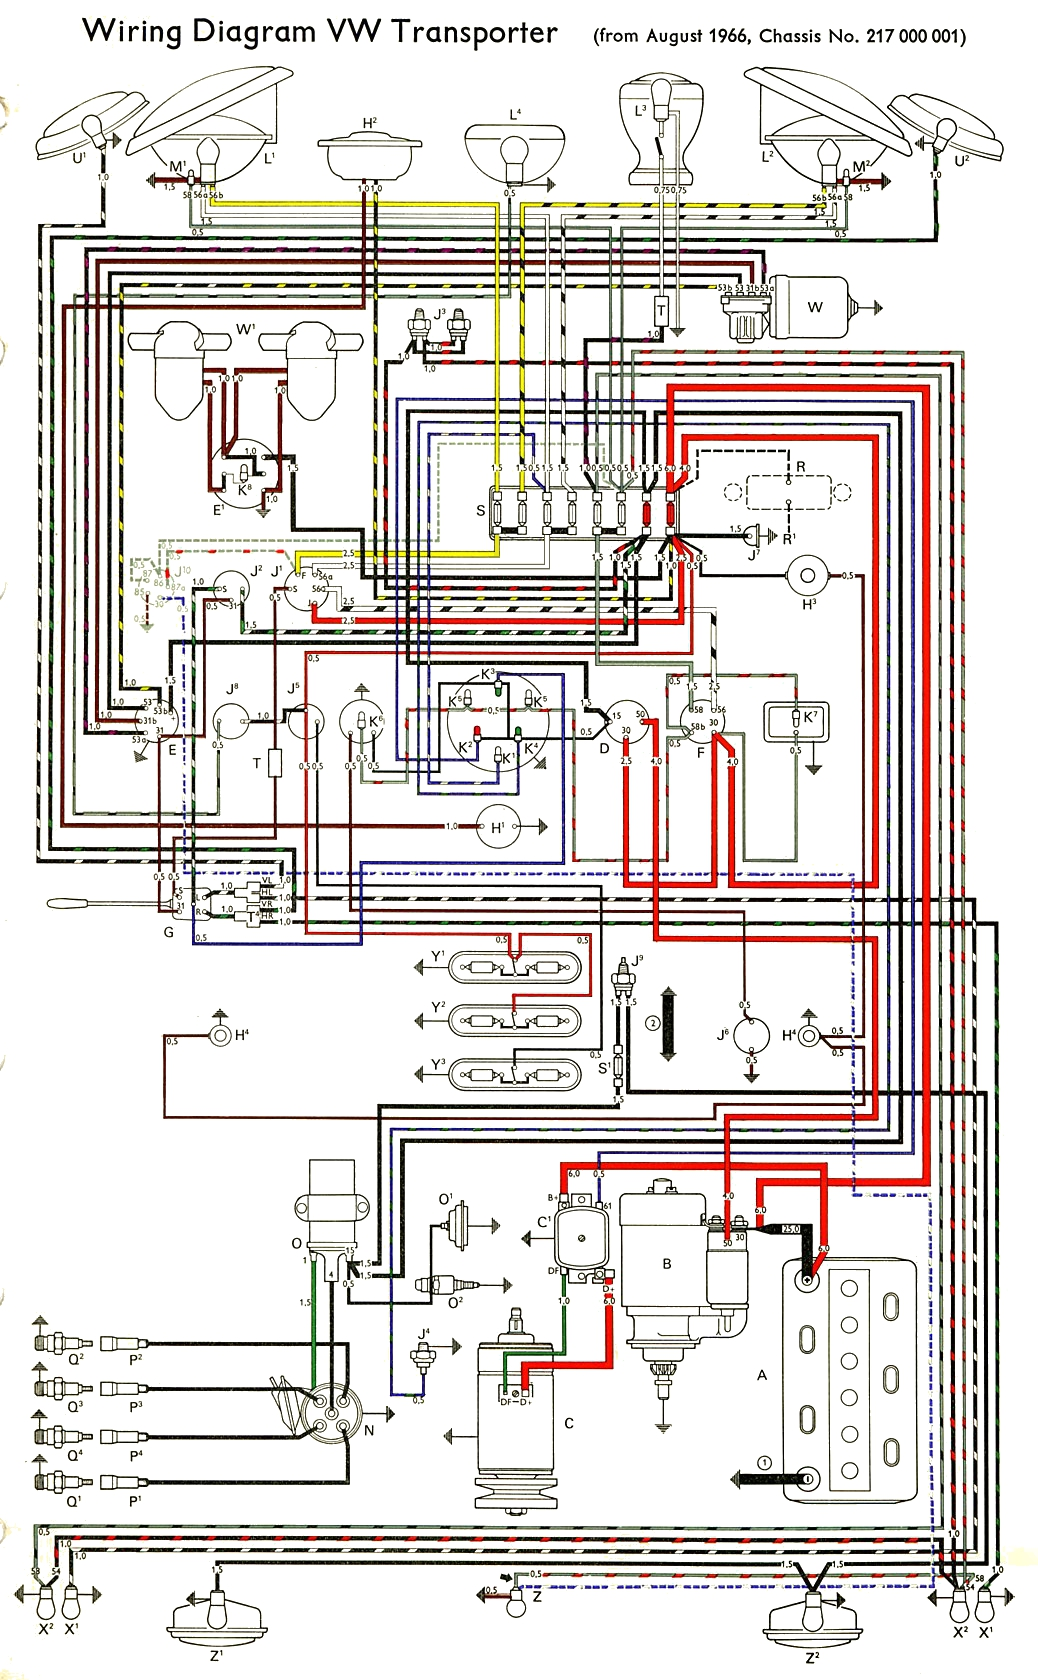 bus_67 thesamba com type 2 wiring diagrams 1973 vw wiring diagram at pacquiaovsvargaslive.co